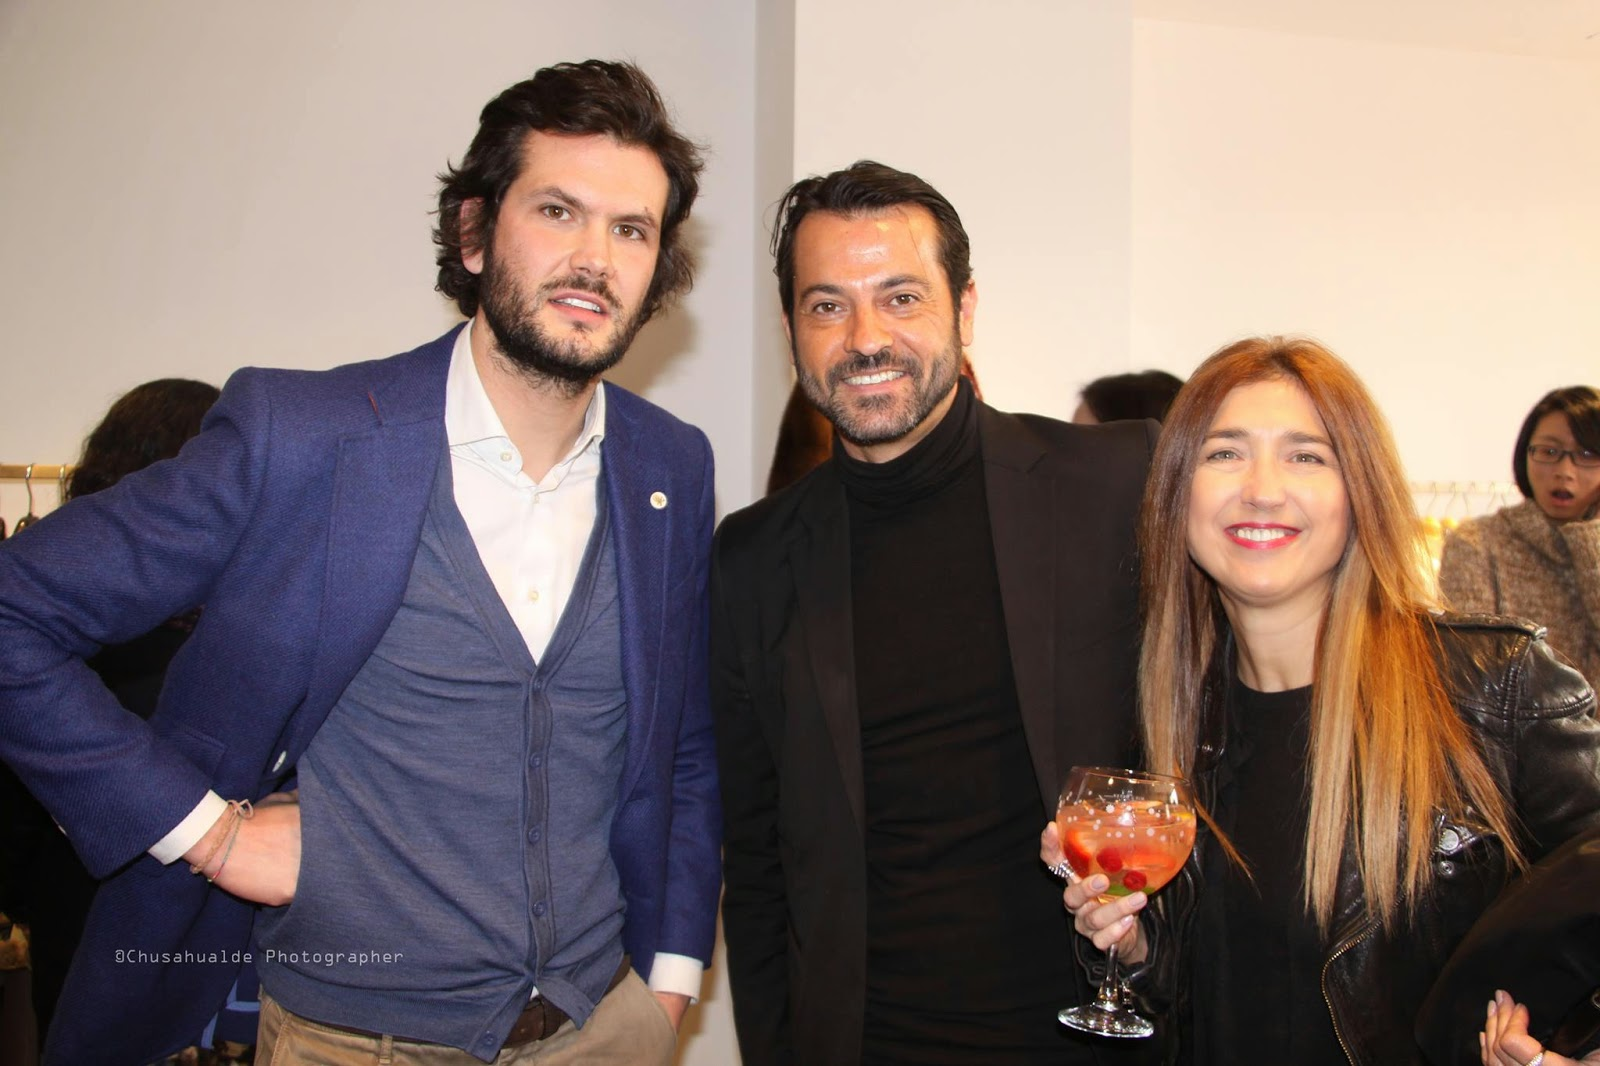 Alfaro, Platea, Pacheco, Año Nuevo Chino de la Cabra, Lujo, Style, Gourmet, Fashion, Comunidad China, Bloggers, Looks, shopping Madrid, King Peter Vodka